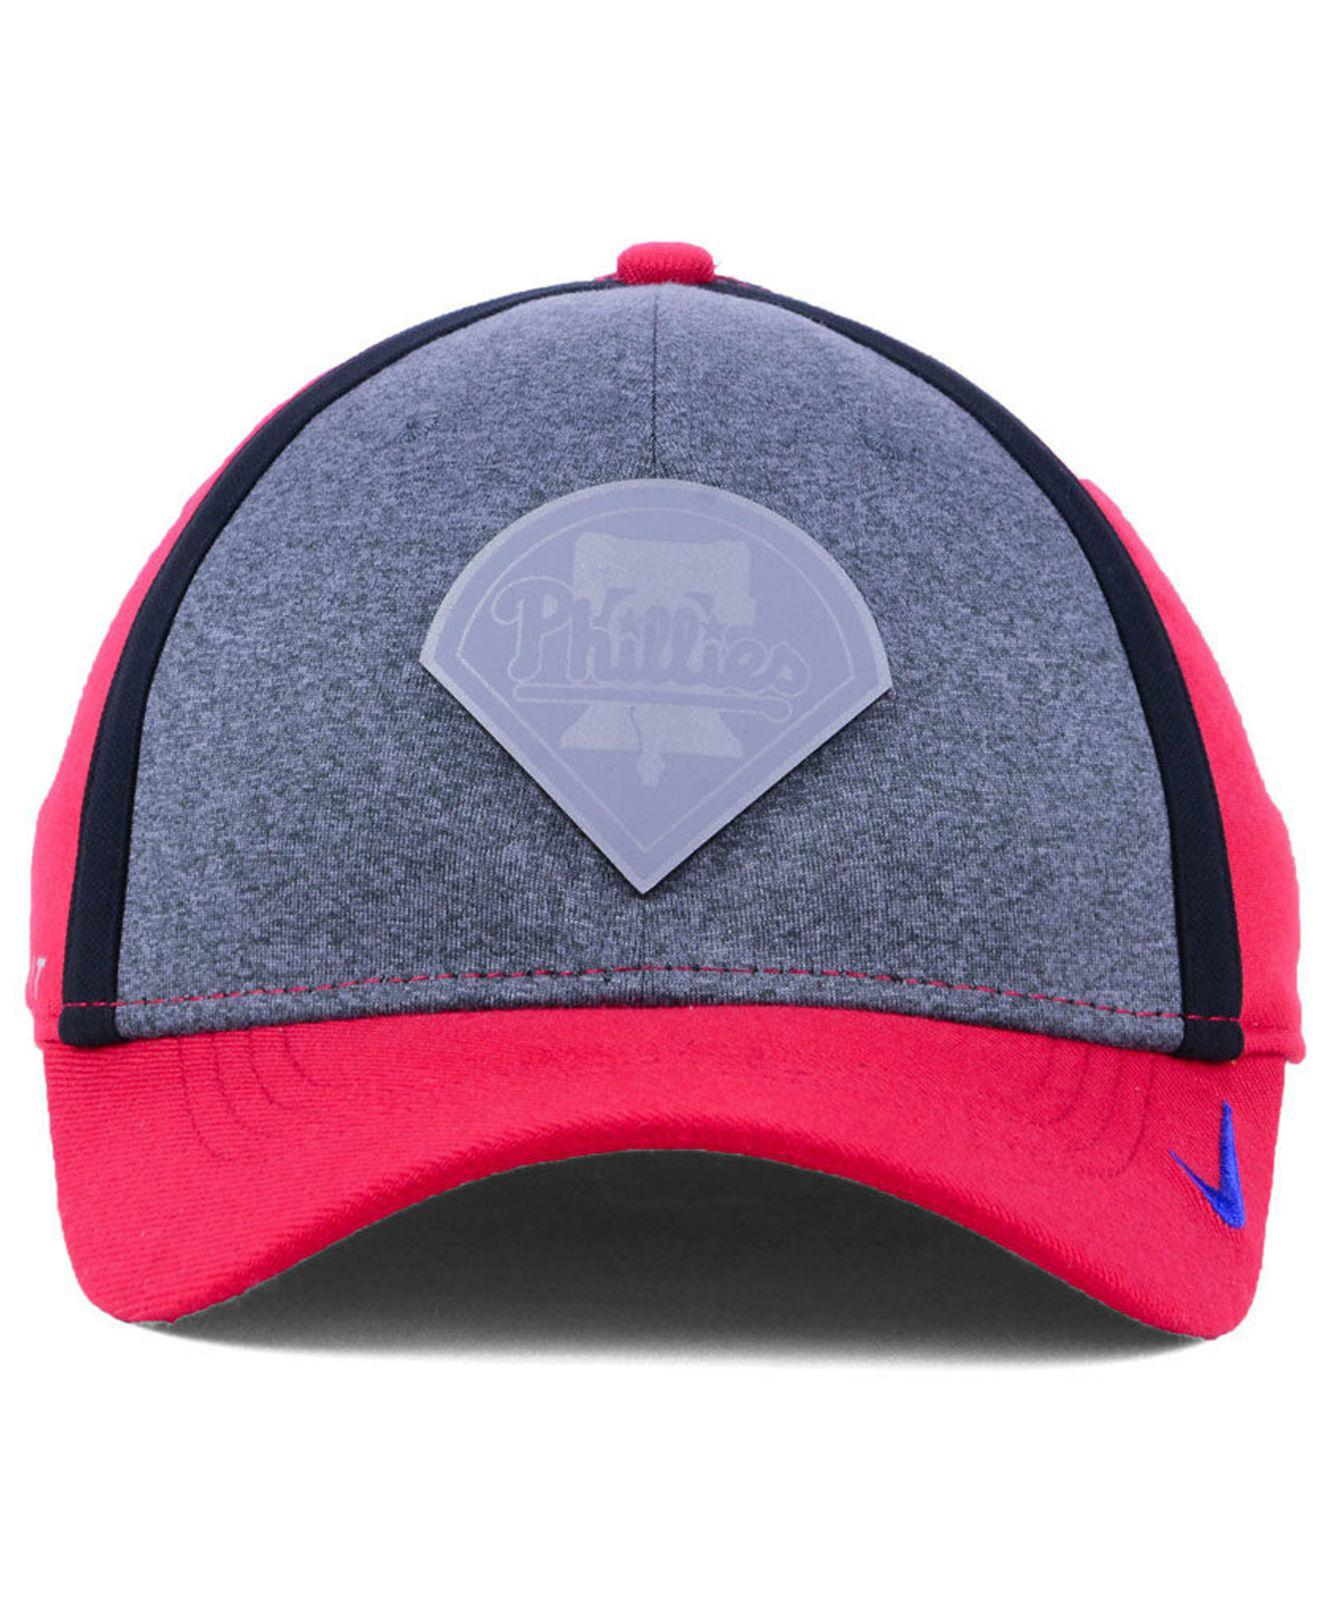 a466c9f89eeee Lyst - Nike Philadelphia Phillies Team Color Reflective Swooshflex Cap in  Red for Men